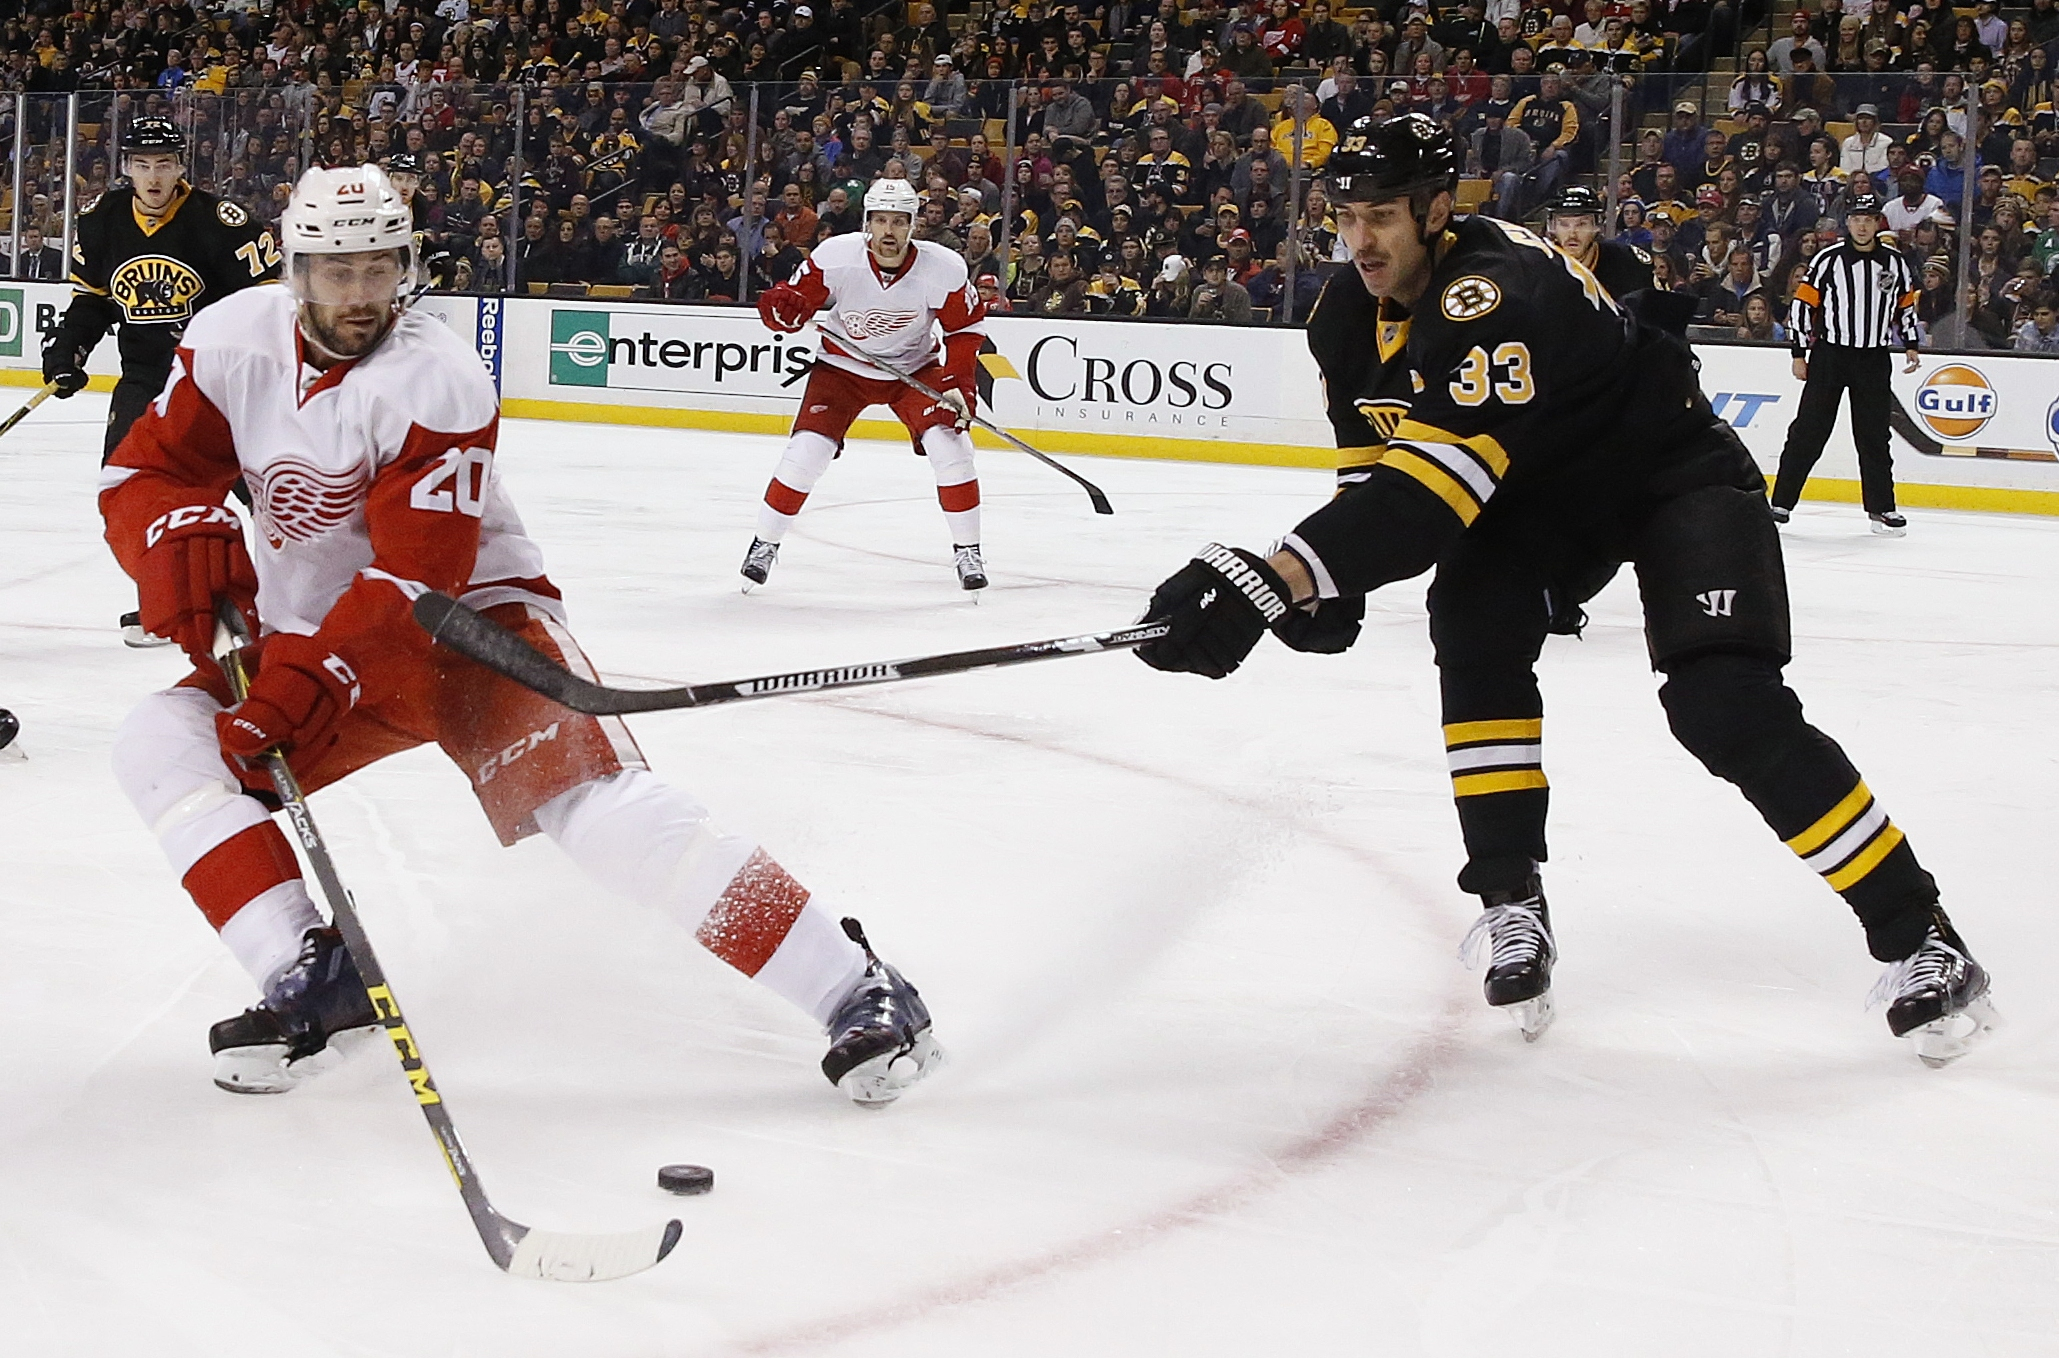 Boston Bruins' Zdeno Chara (33) battles Detroit Red Wings' Drew Miller (20) for the puck during the first period of an NHL hockey game in Boston, Saturday, Nov. 14, 2015. (AP Photo/Michael Dwyer)